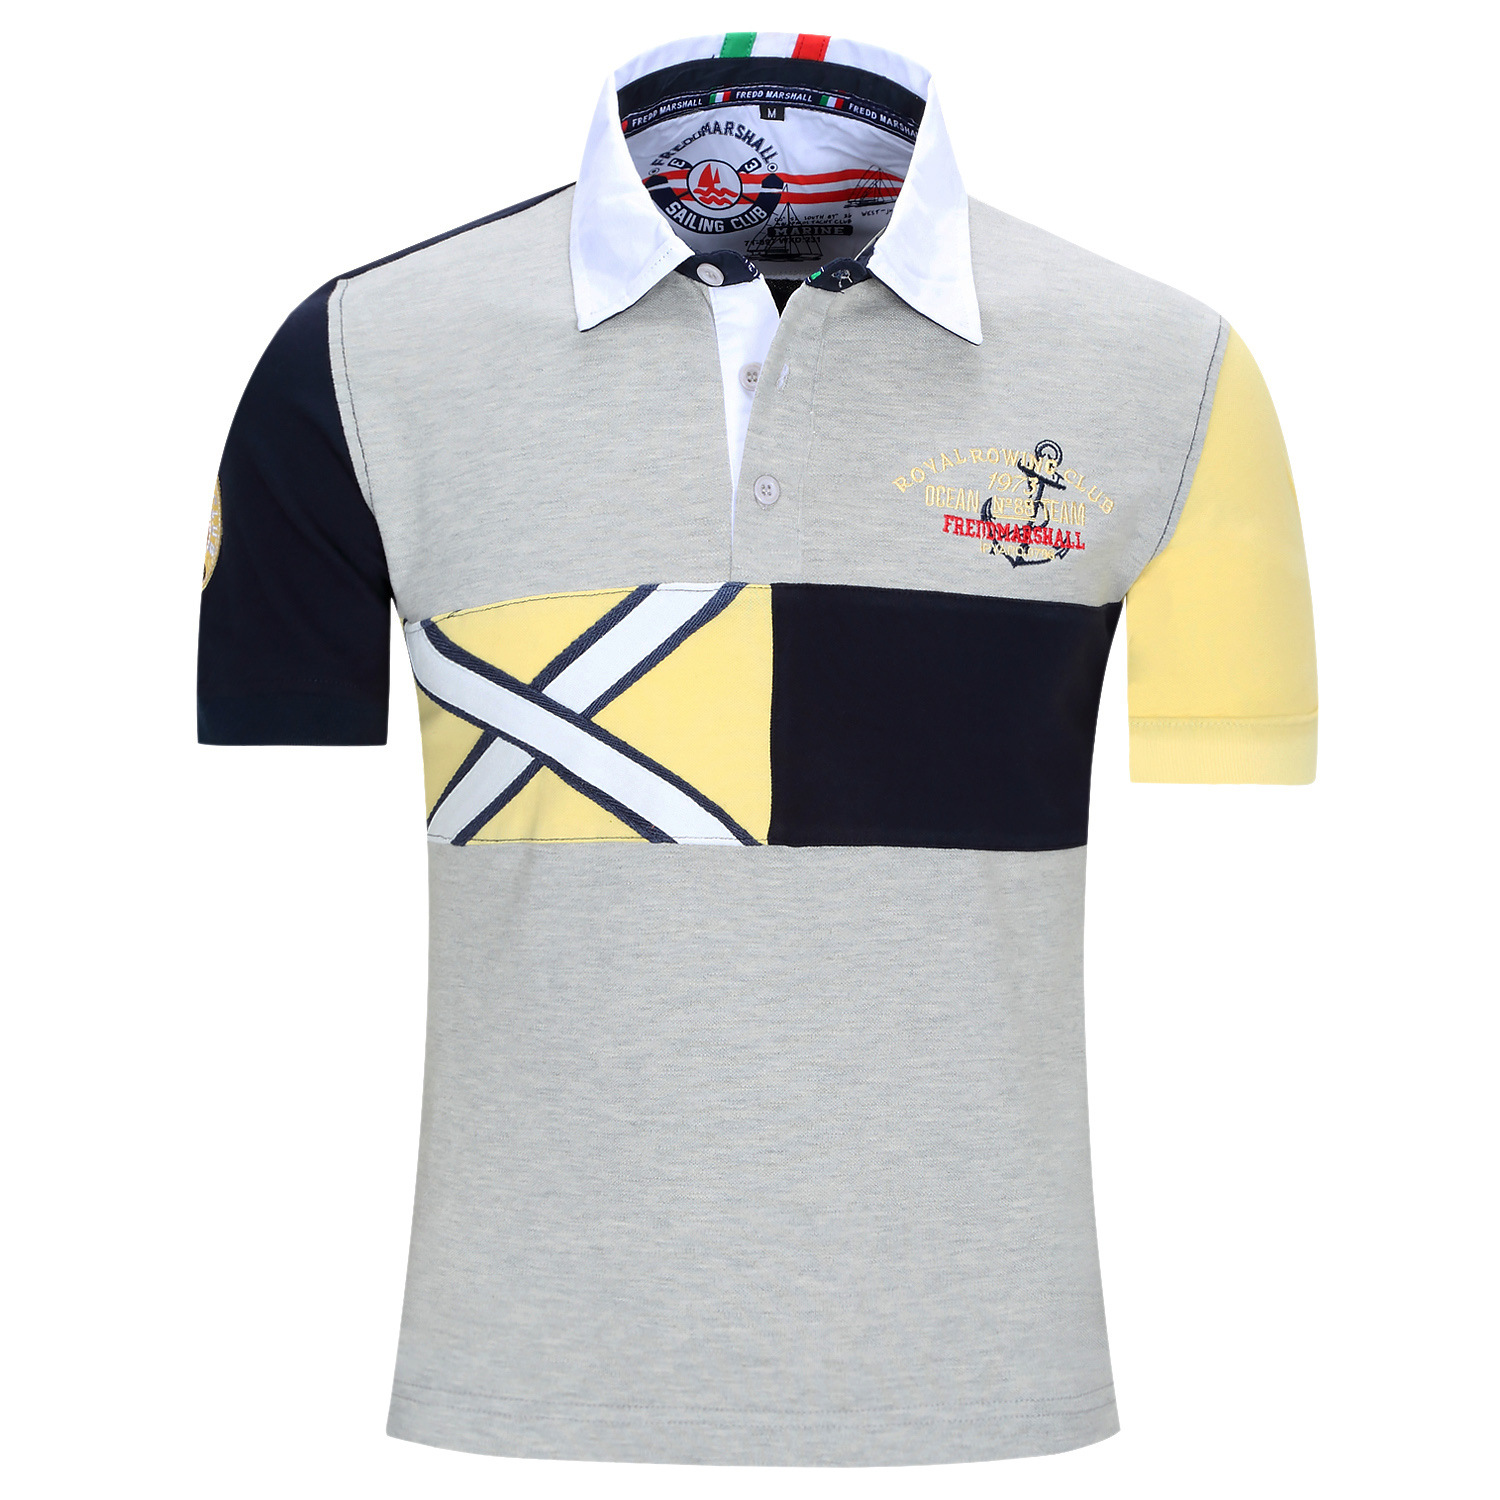 Fredd Marshall Polo Shirt Cotton Euro Size Mens Polo Shirts For Man Turn Down Collar Designer Fashion Polo Tees Tops N09 Mens Designer Polo Shirts Mens Fashion Polo Shirtsmen Polo Shirt Aliexpress